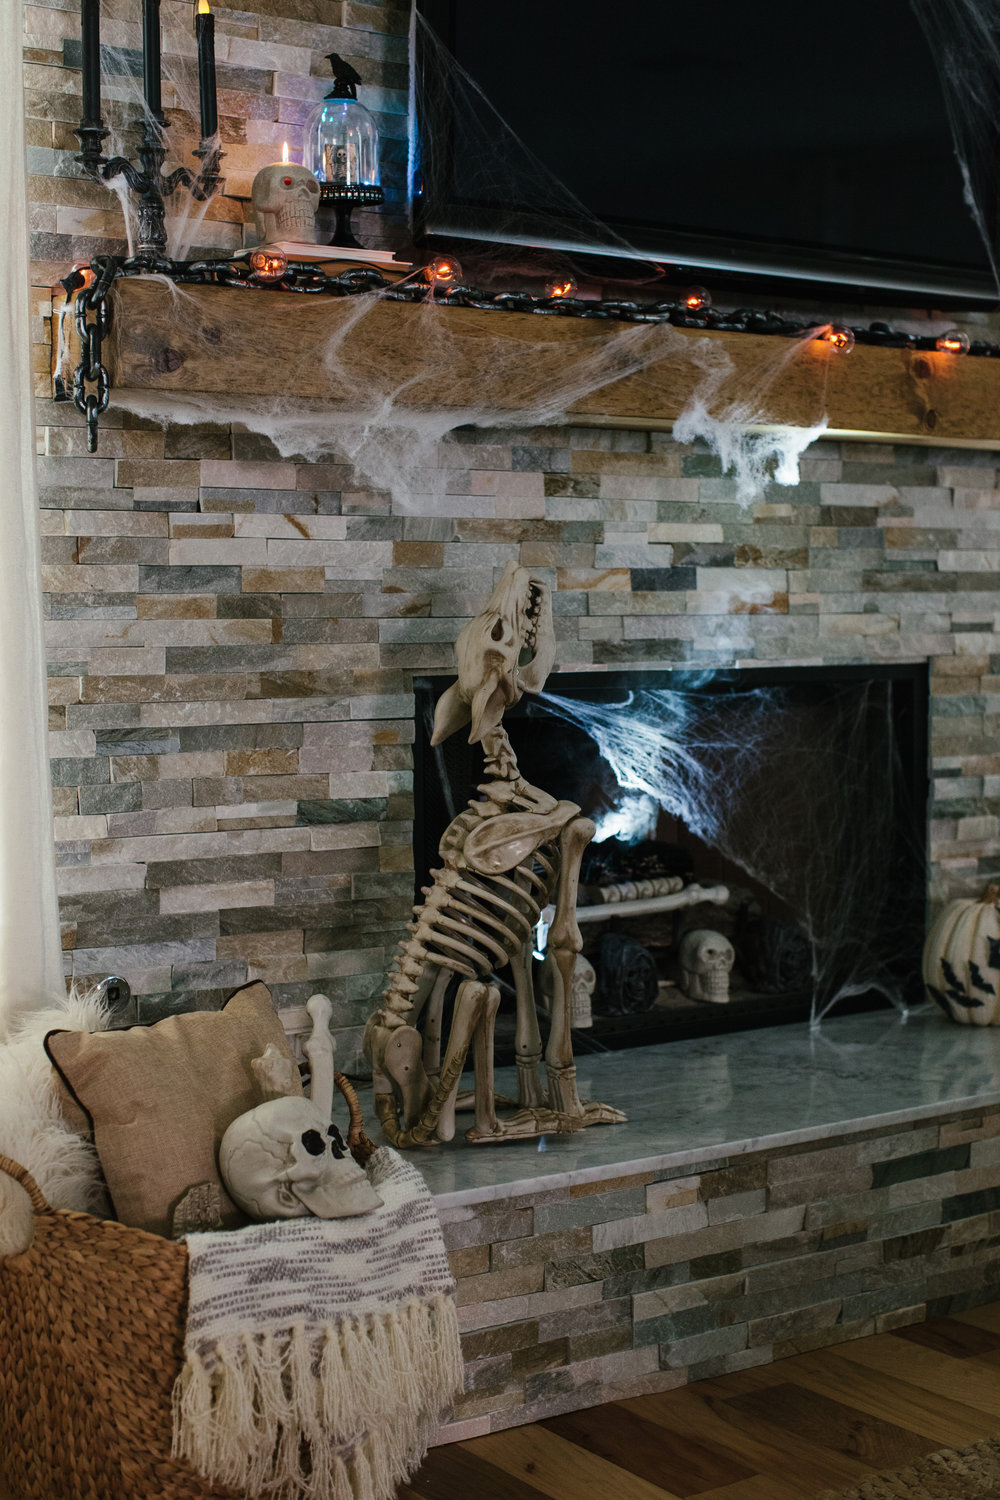 Home depot style challenge reveal ave styles for Home depot halloween decorations 2016